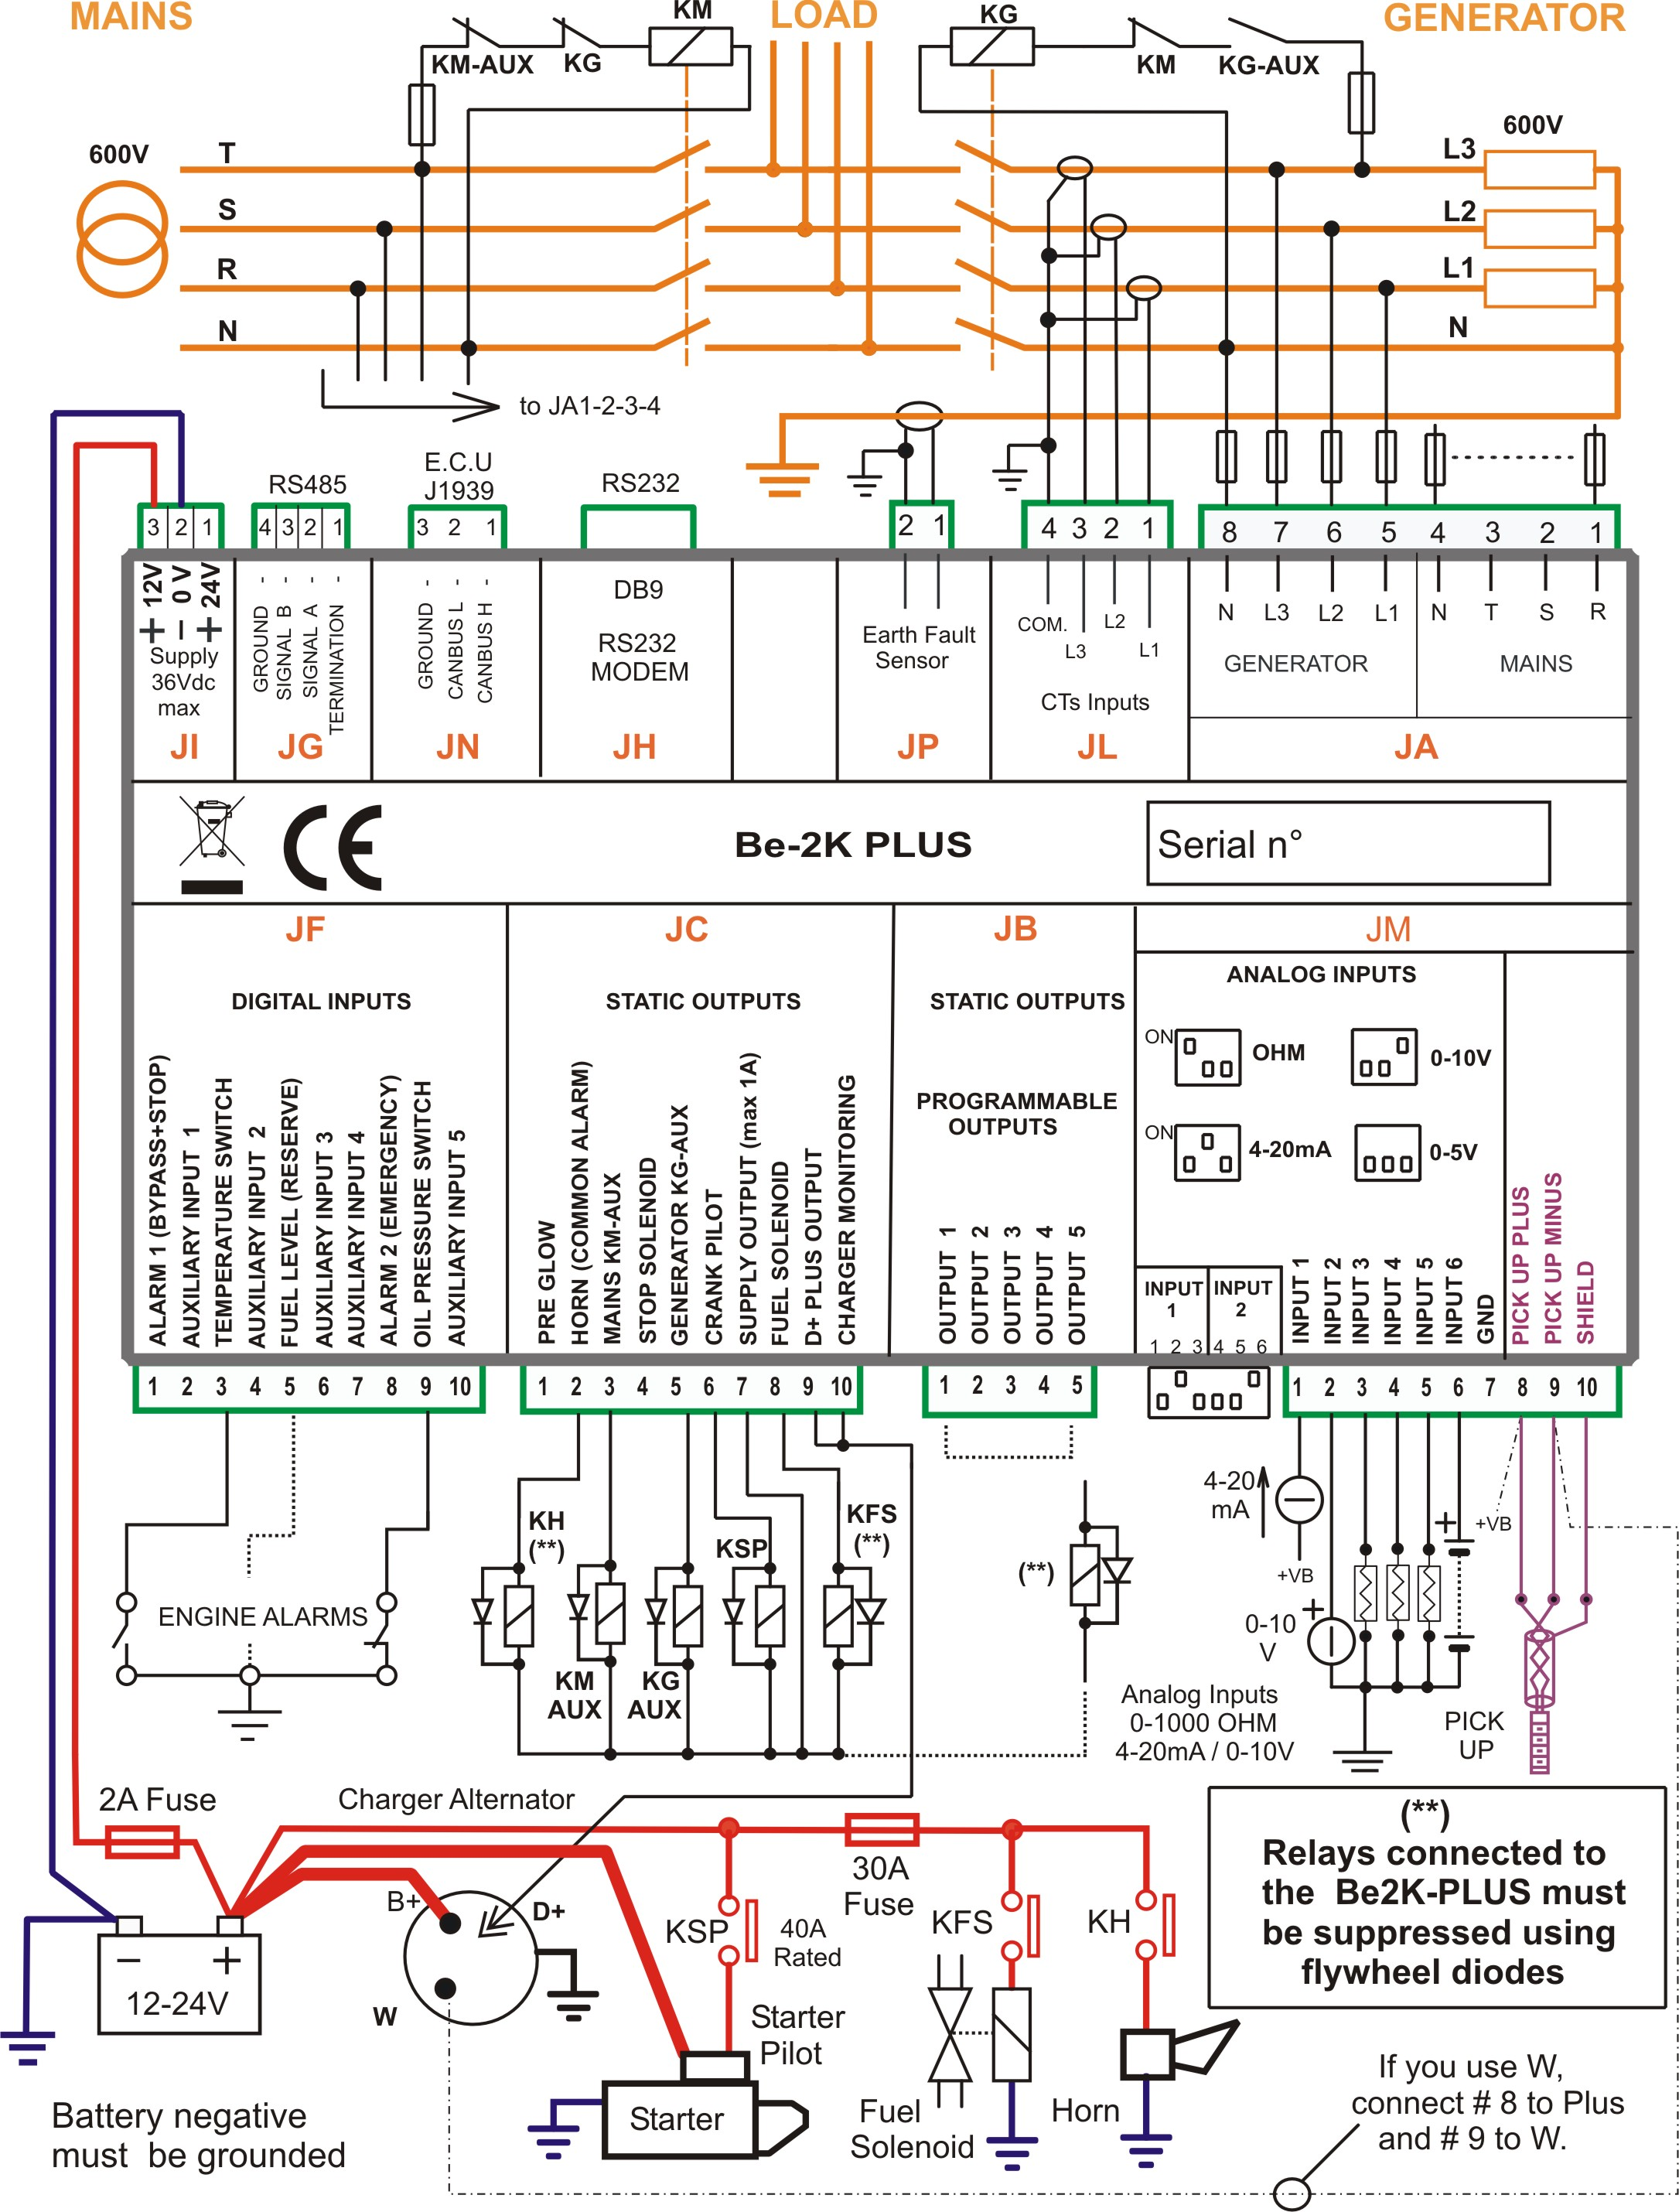 amf panel control wiring genset controller rh bernini design com wiring diagram for lighting control panel wiring diagram of control panel box of submersible water pump